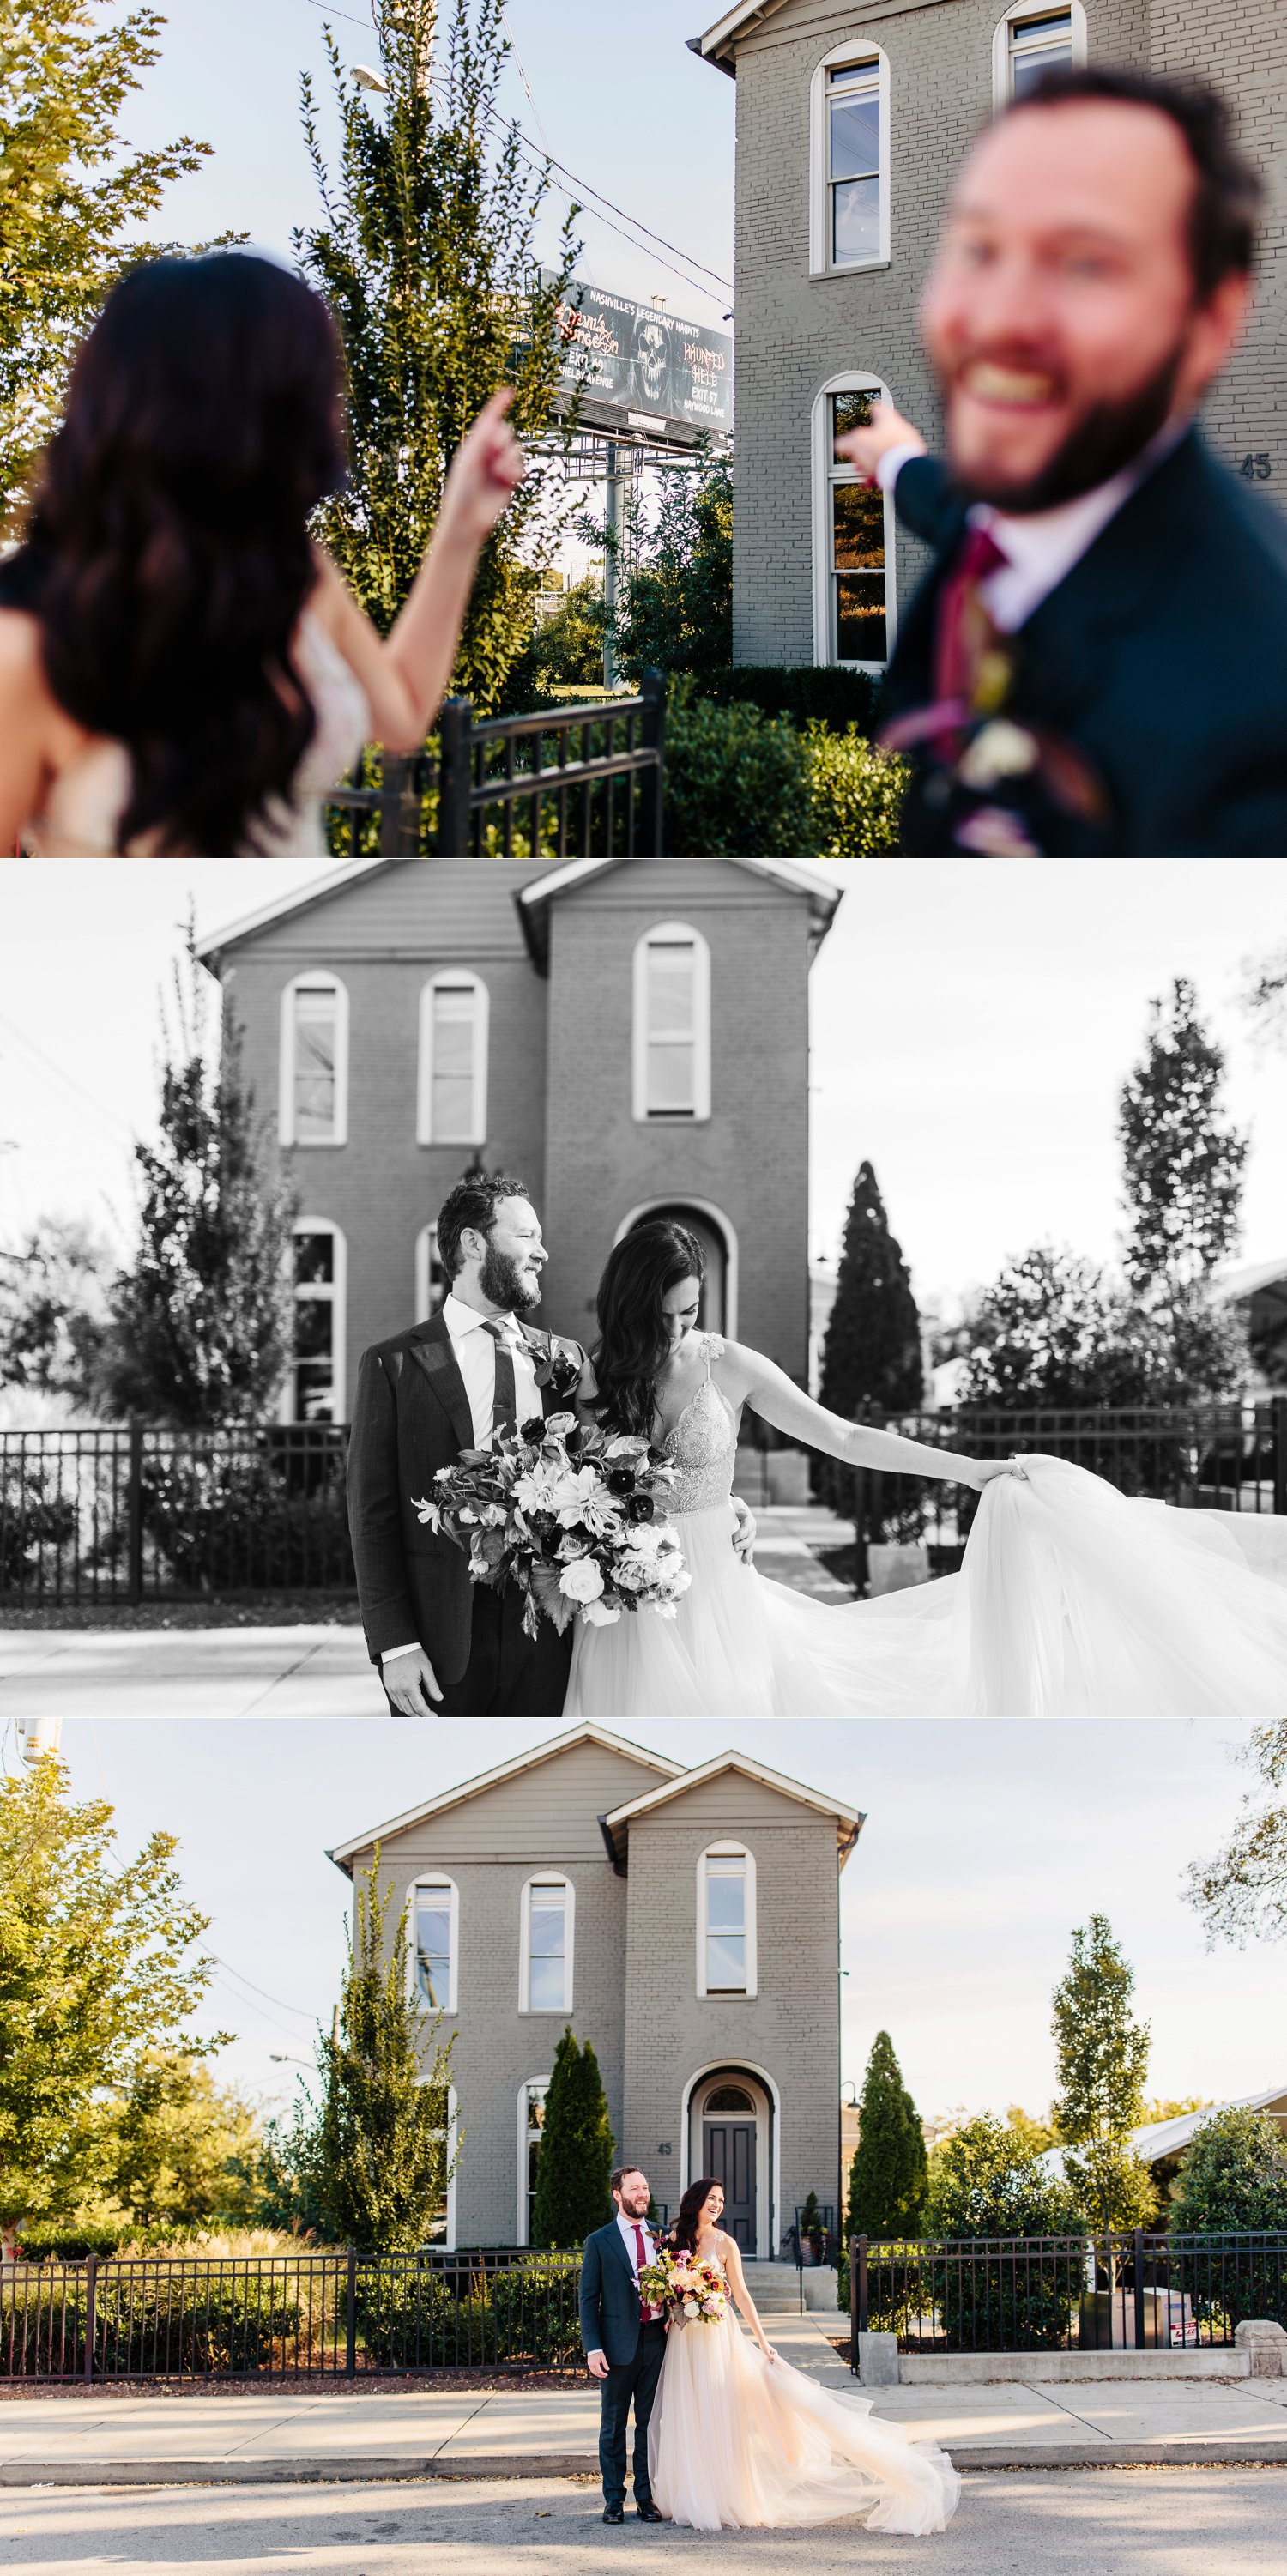 CK-Photo-Nashville-engagement-wedding-photographer-the-cordelle_0009.jpg